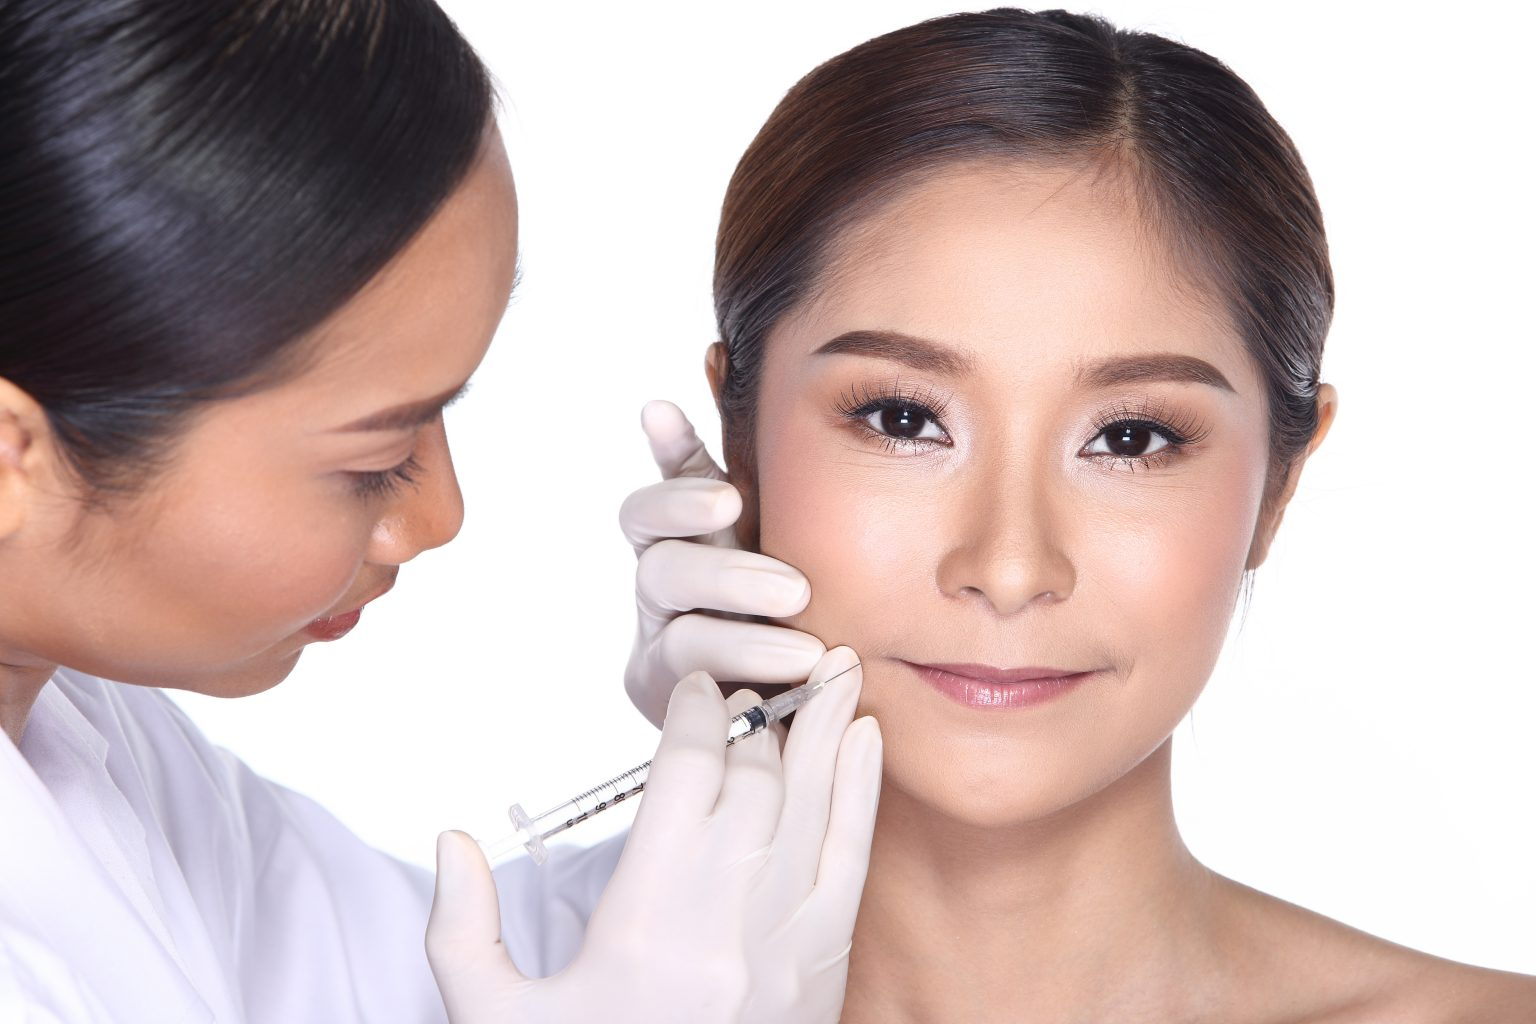 Beautiful Woman With Medical Healthy Beauty Injection Treatment Check Nose Skin Shape Face Before Plastic Surgery